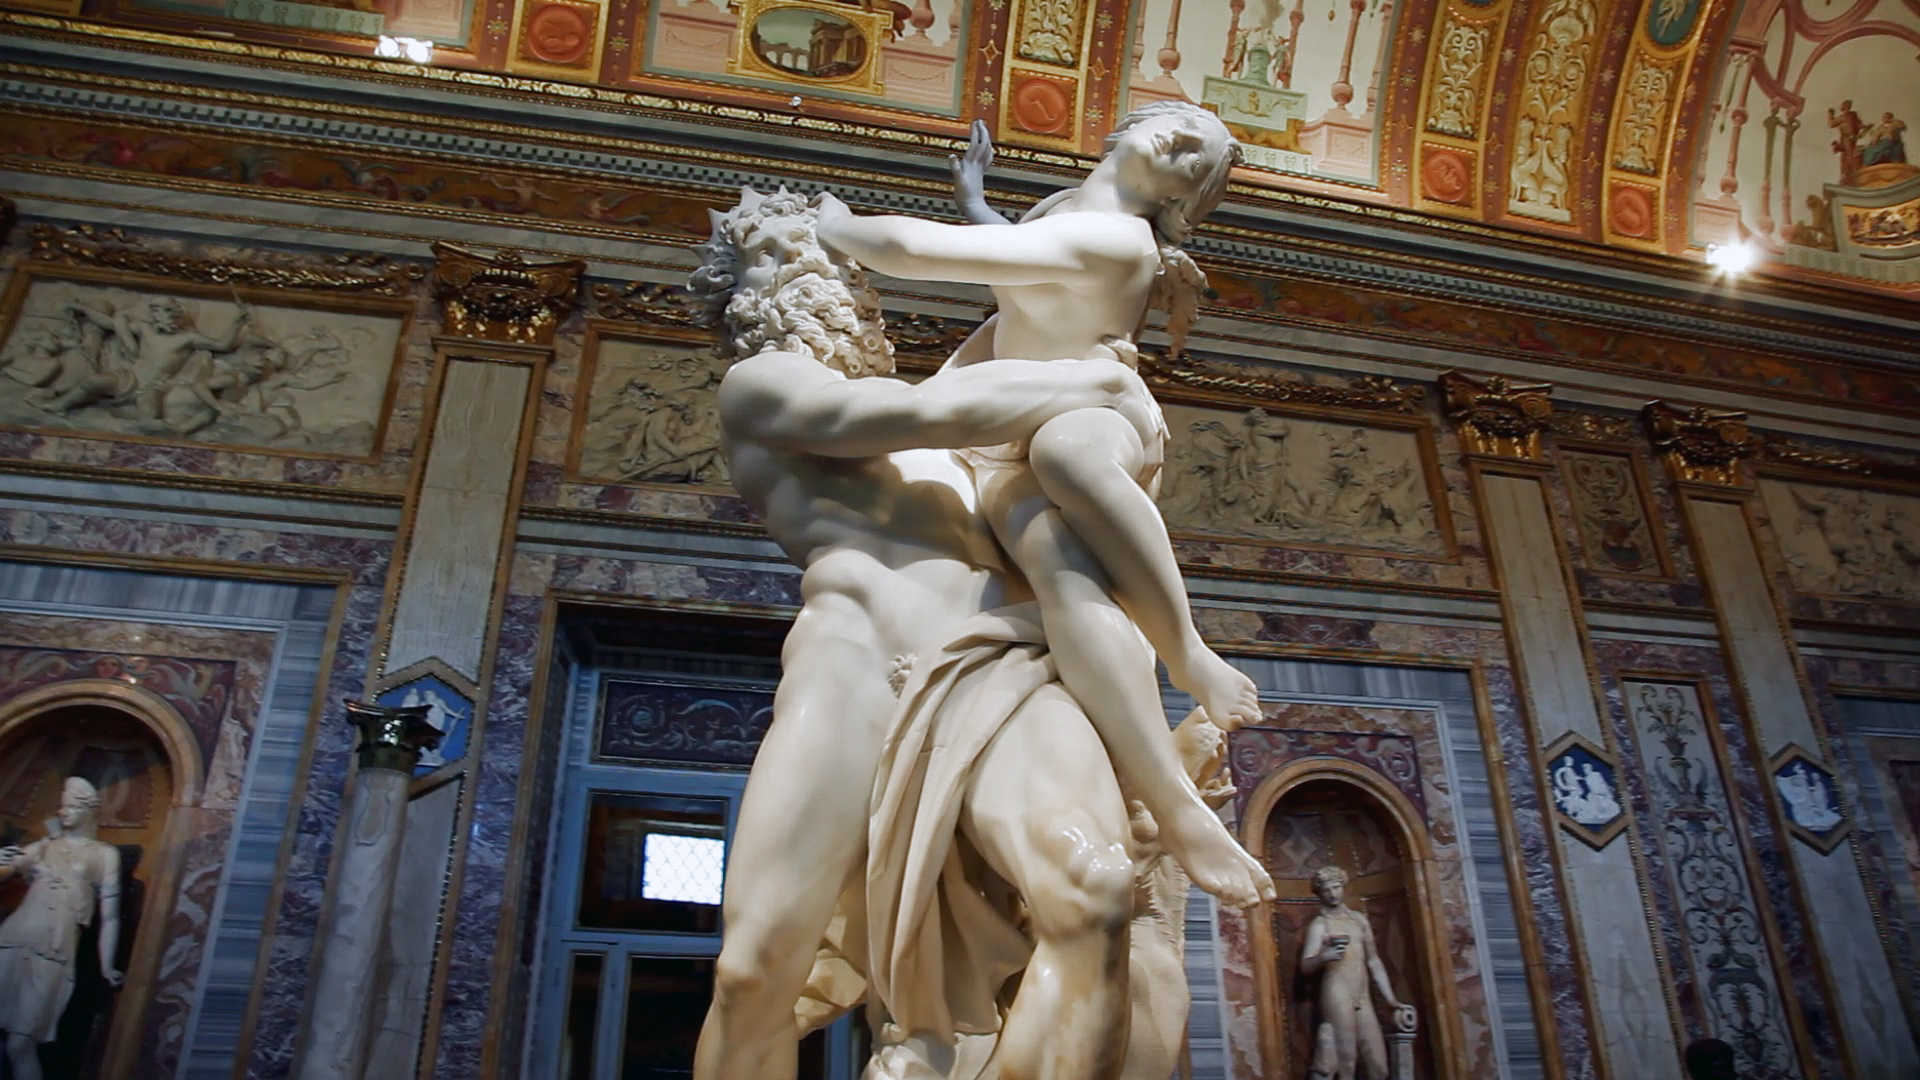 Bernini's Rape of Persephone